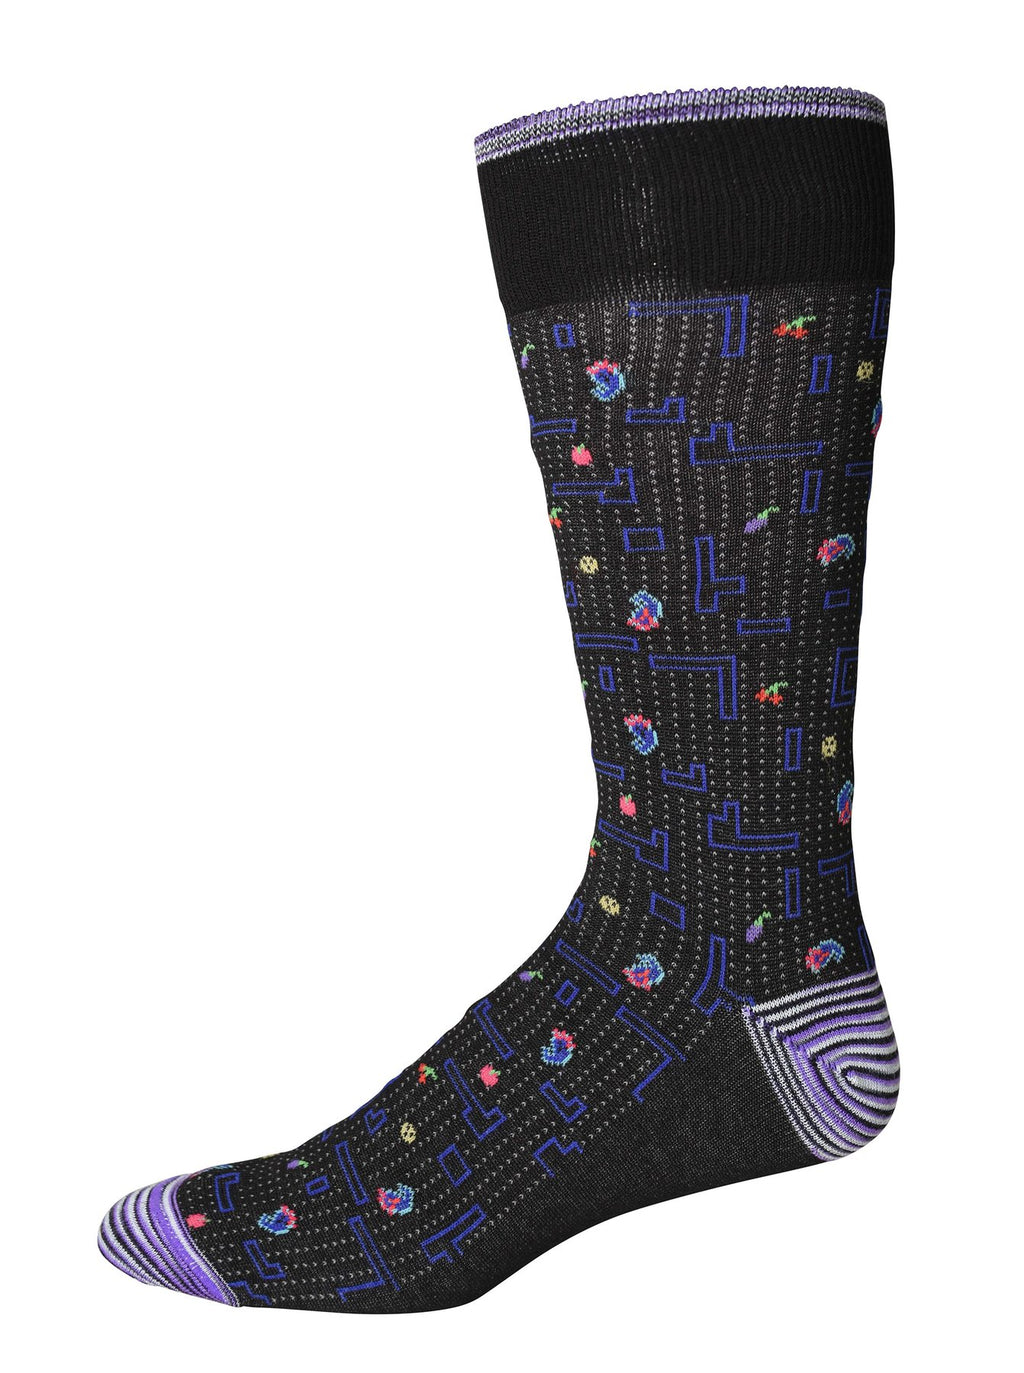 Robert Graham Socks - Victory Lane Black